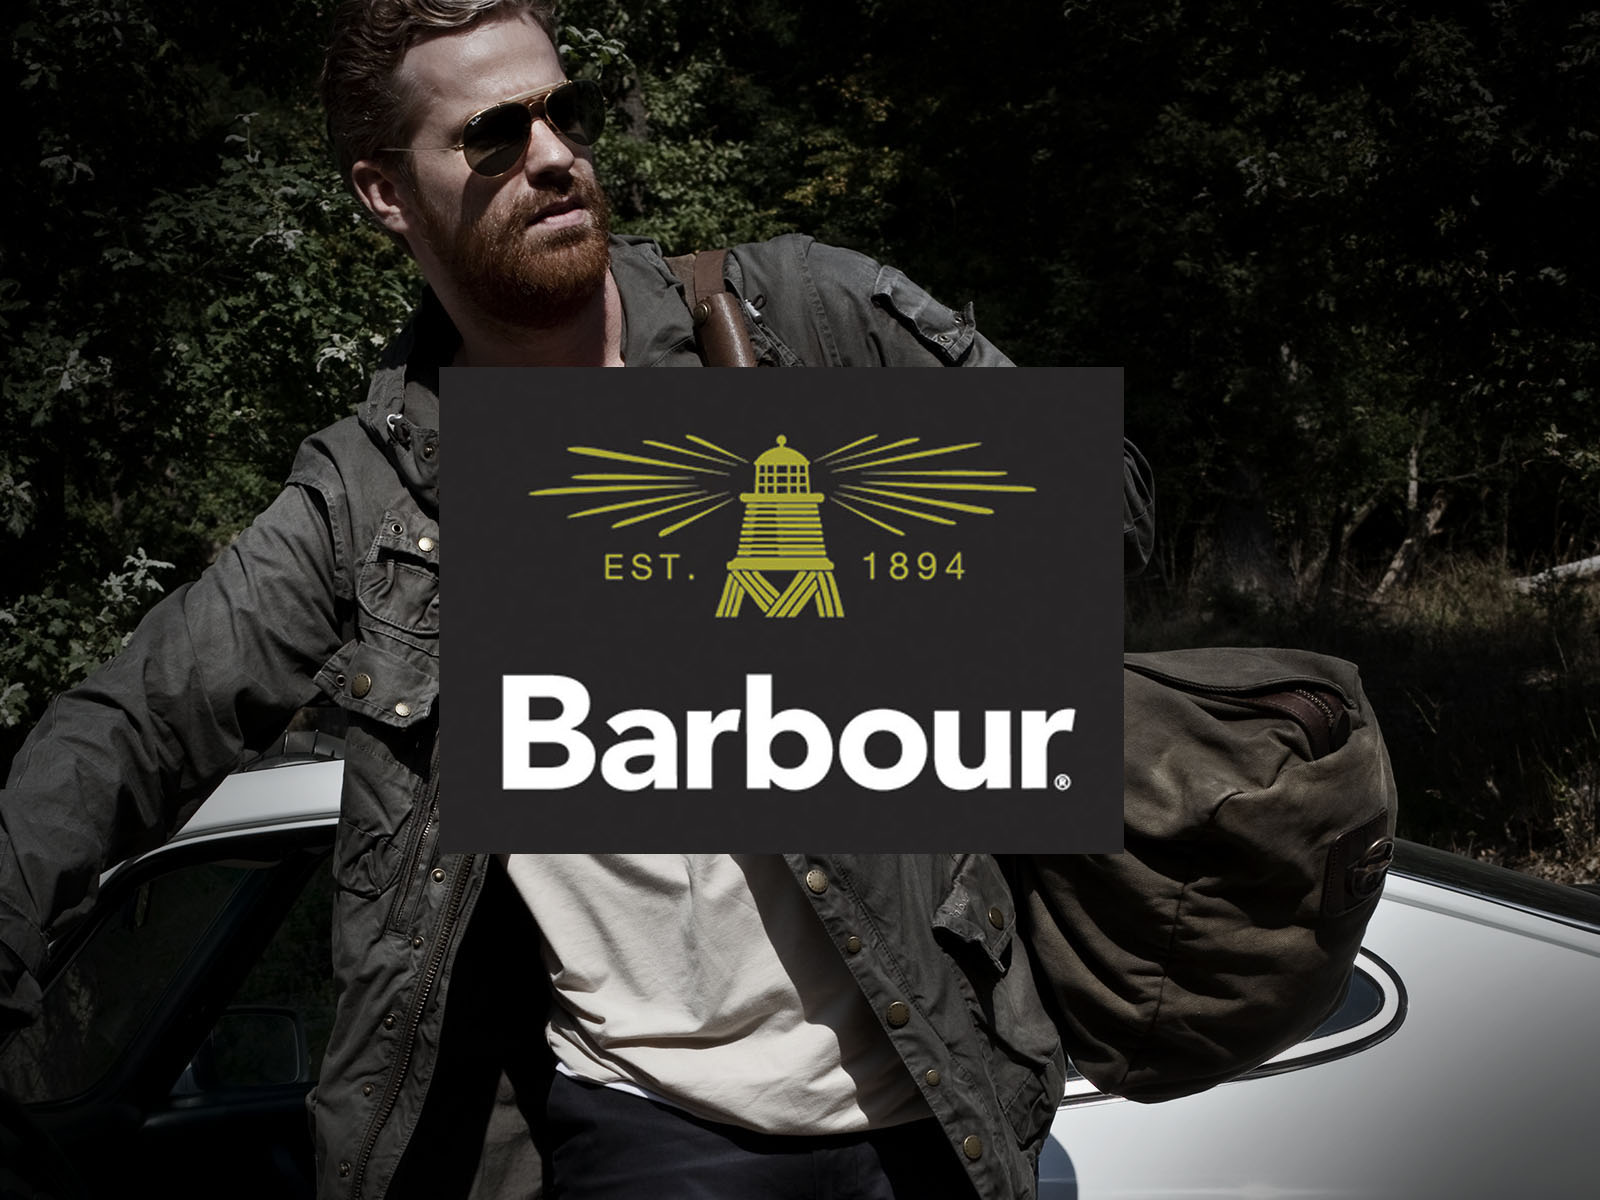 barbour brand